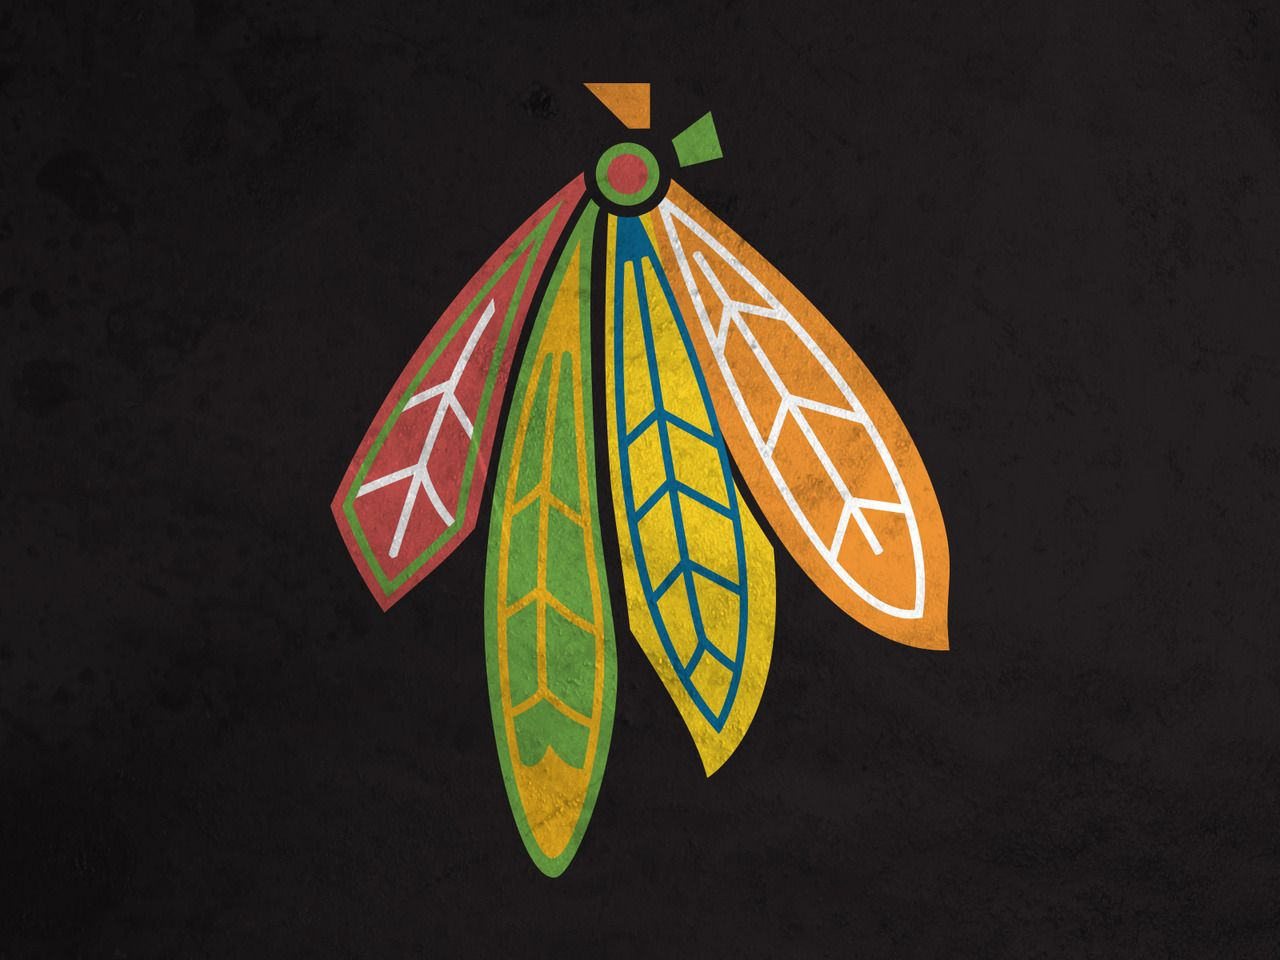 4feathers Tats Chicago Blackhawks Wallpaper Chicago Cubs